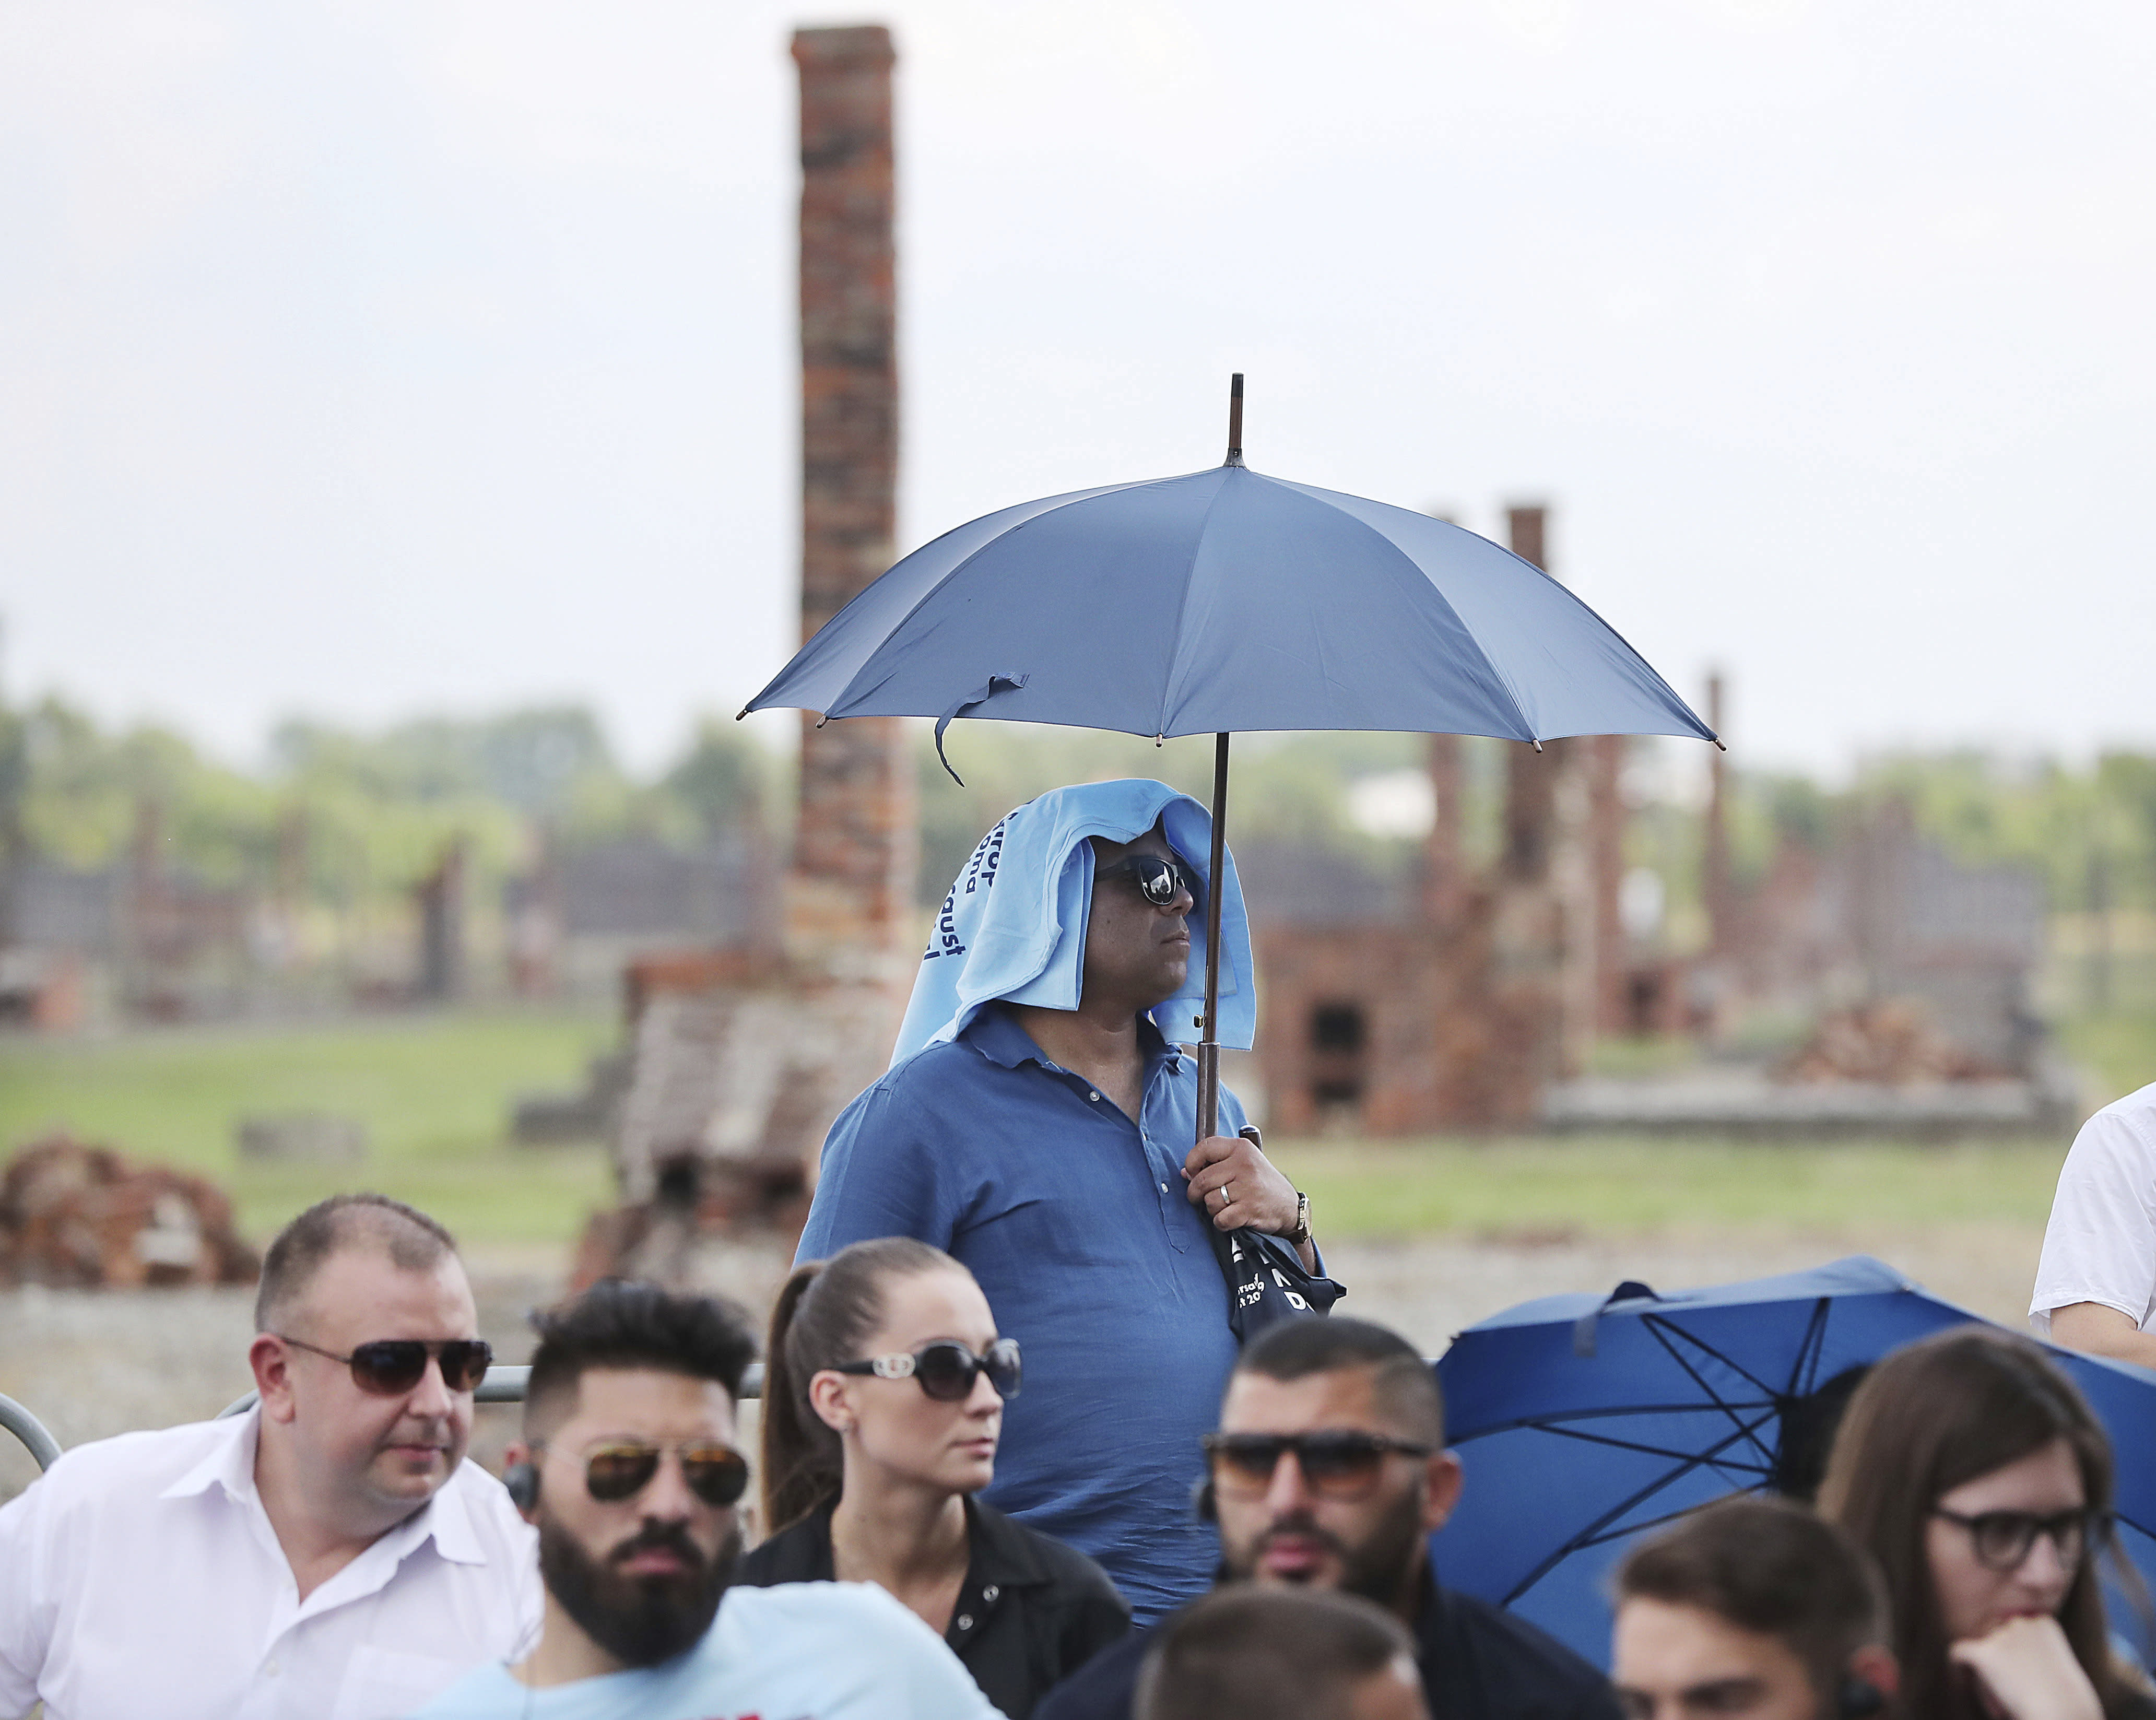 Jesse Jackson pays homage to Roma at Auschwitz ceremony